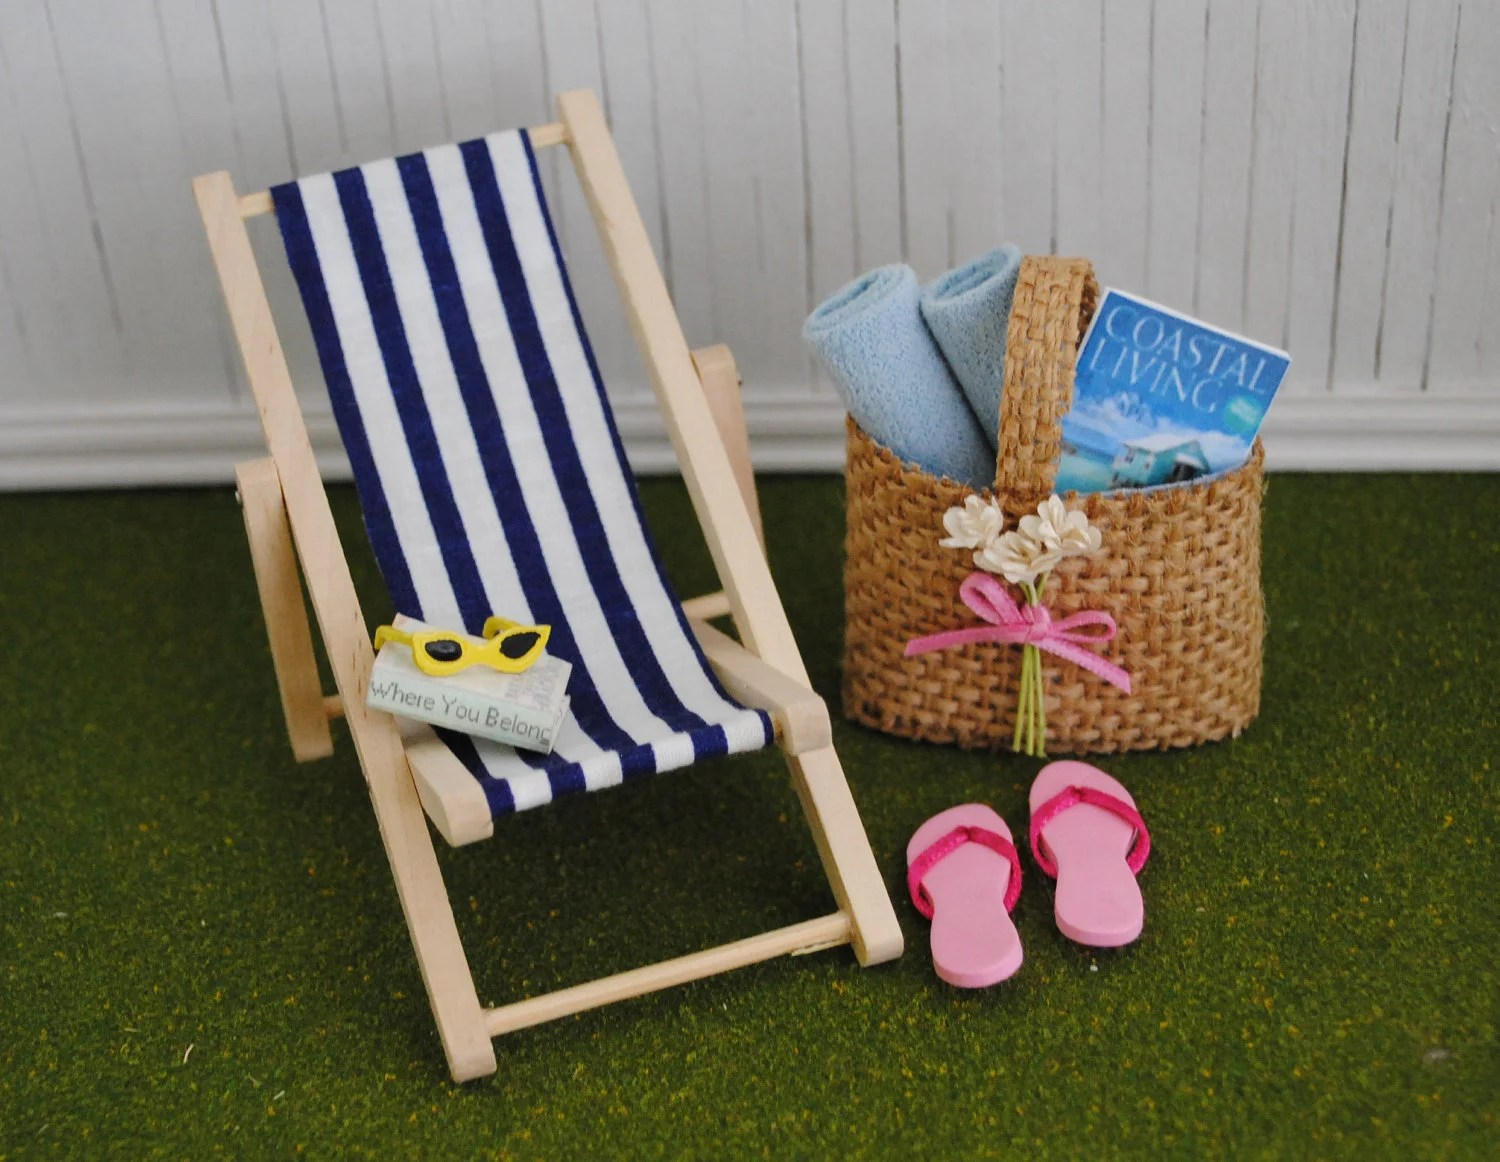 Blue And White Striped Chair Miniature Blue And White Striped Beach Chair A Cute Burlap